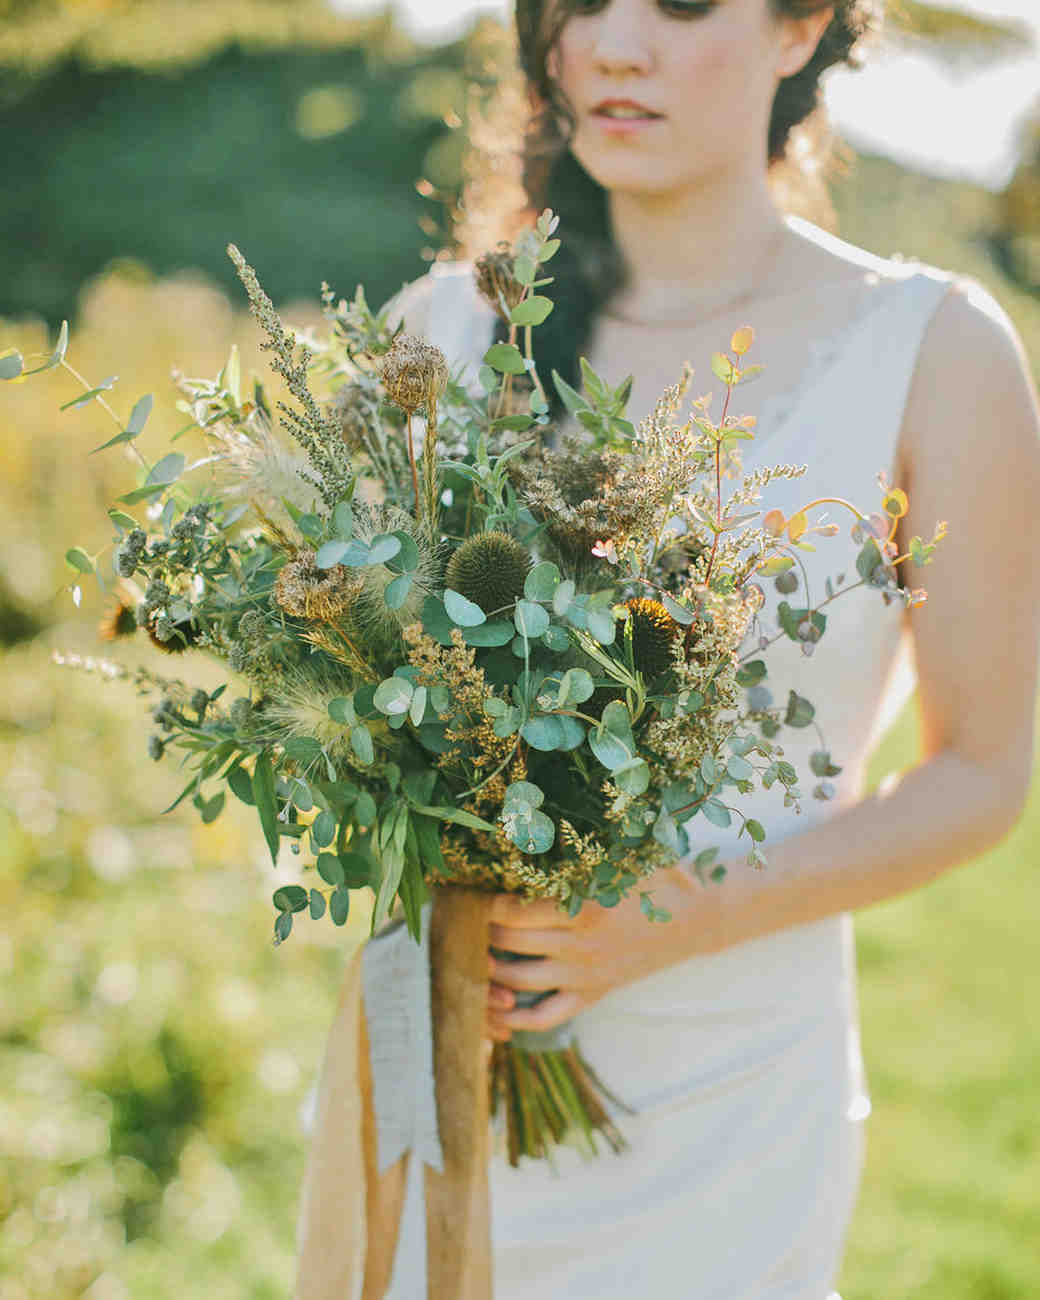 Wedding Bouquets Not Flowers: Unique Non-Floral Wedding Bouquet Ideas